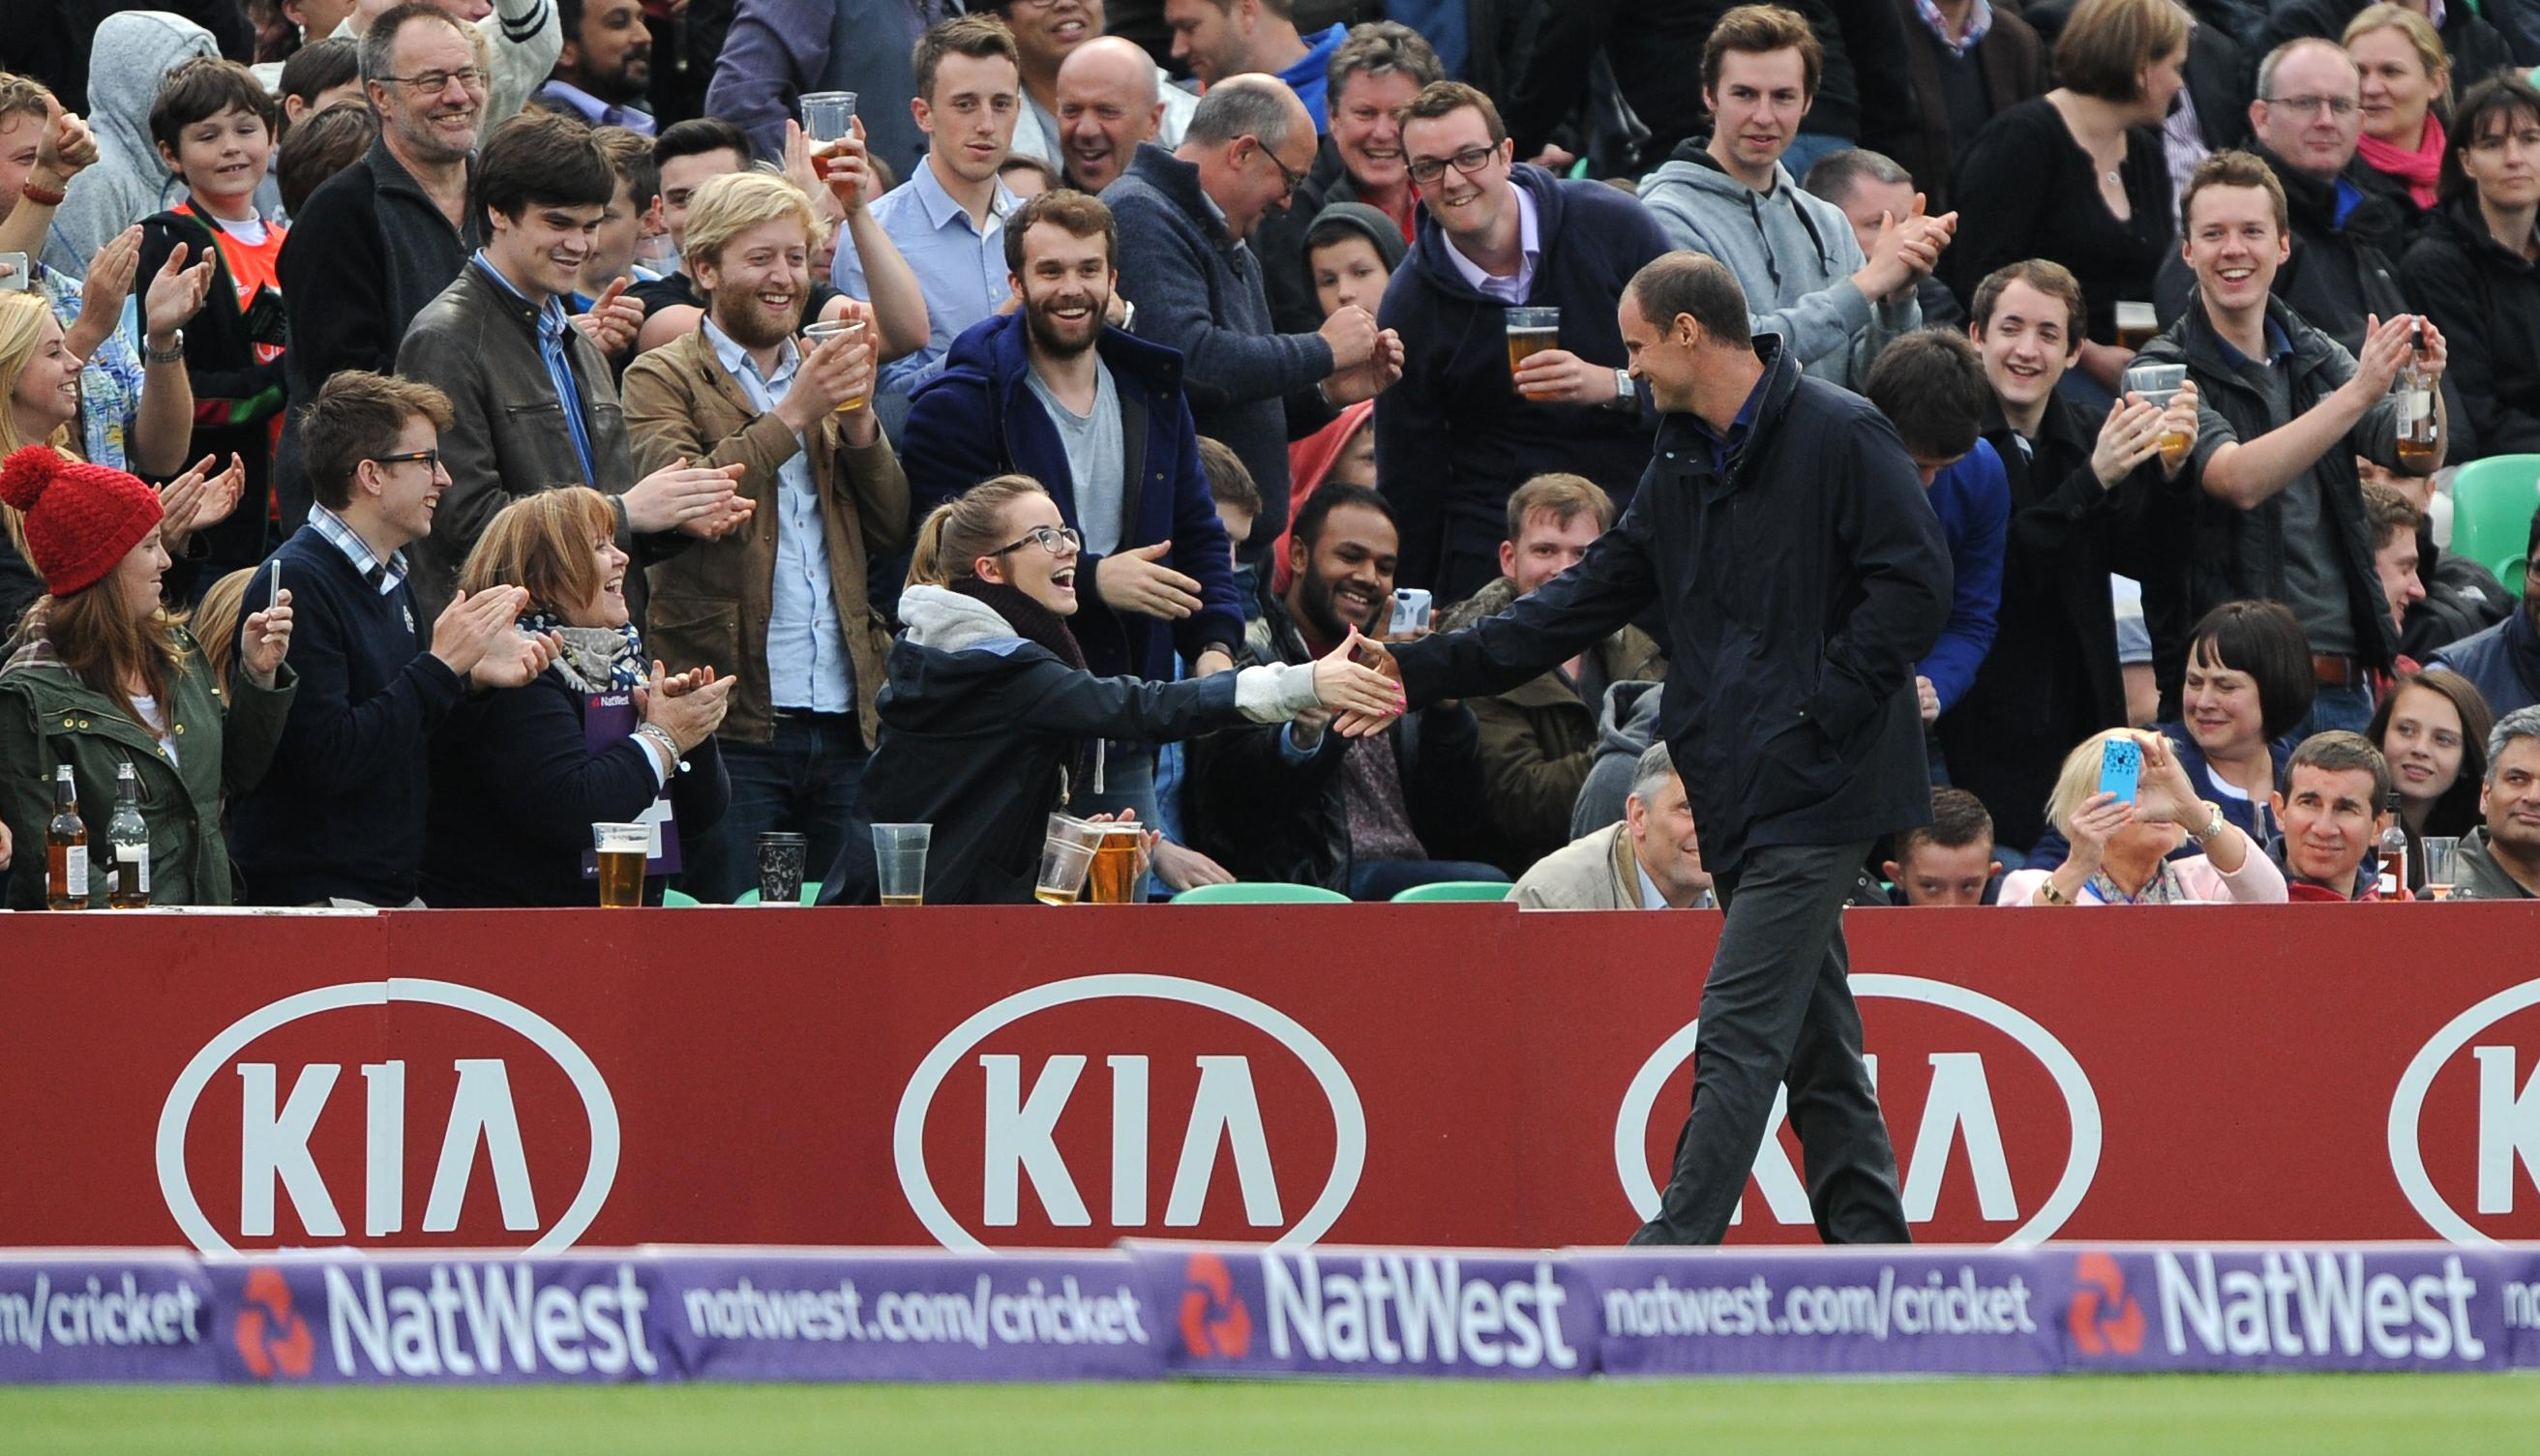 Andrew Strauss shakes the hands of fans at the Oval during Middlesex's match with Surrey